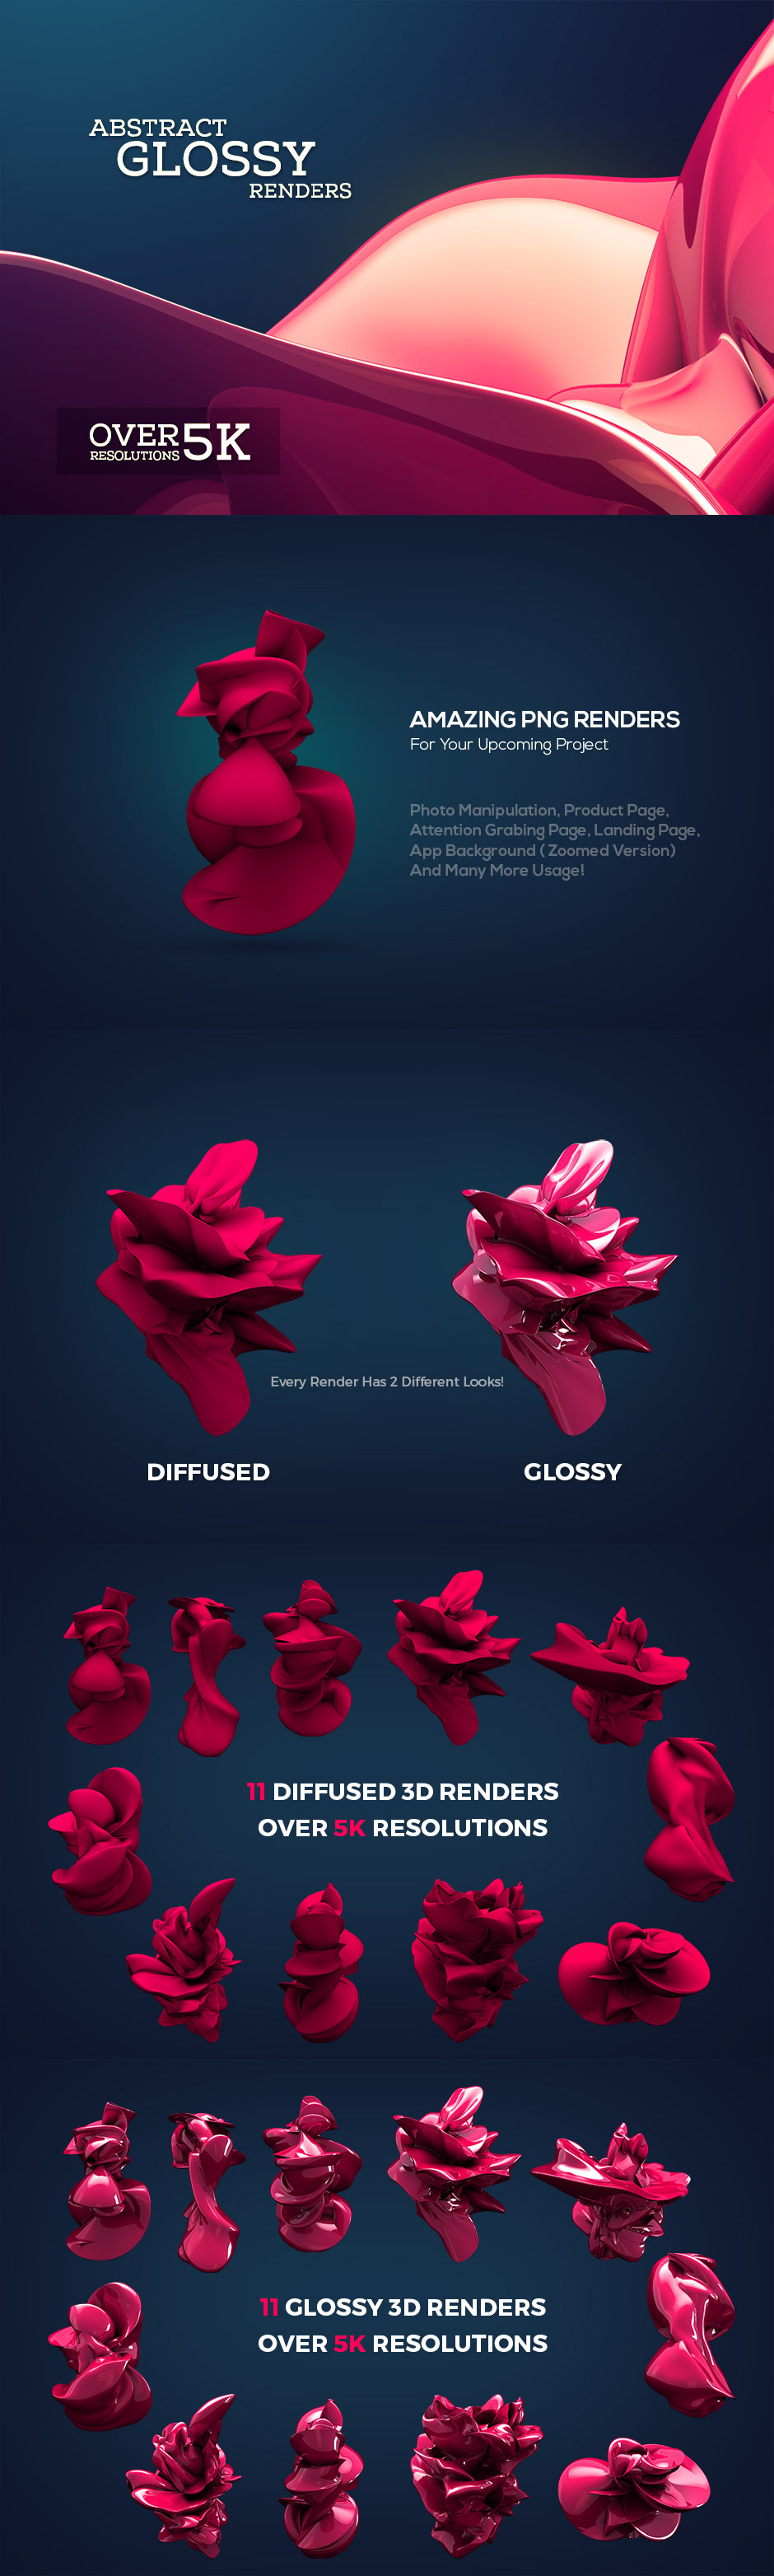 Abstract Glossy 3D Renders